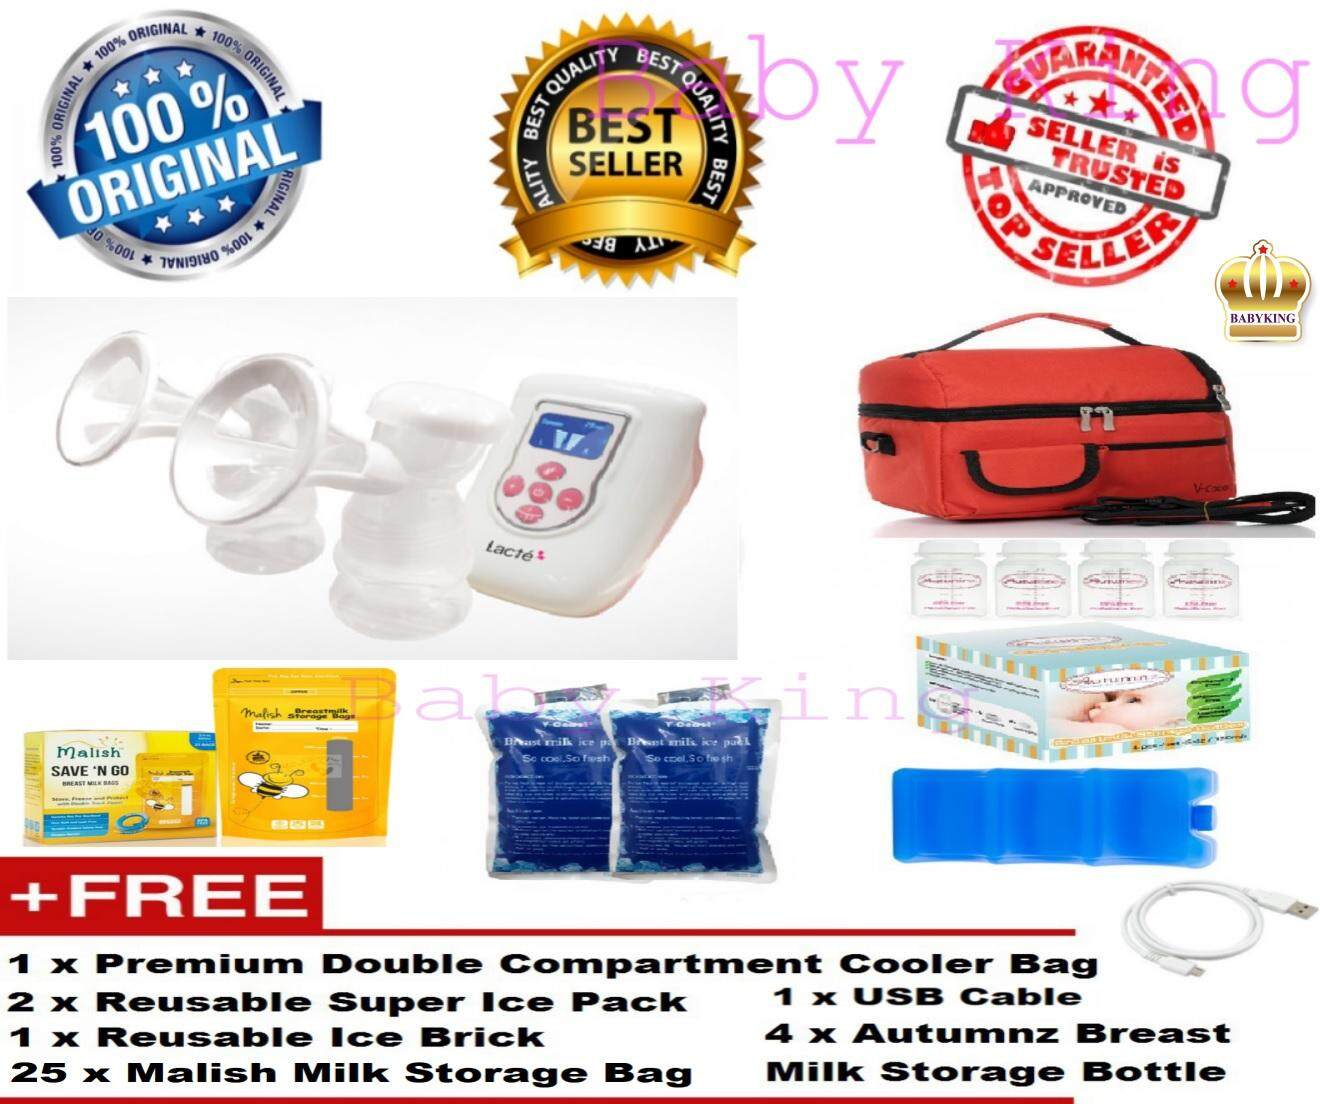 [free Shipping] Original Lacte Duet Electric Double Breast Pump + Free Gifts By Baby King.